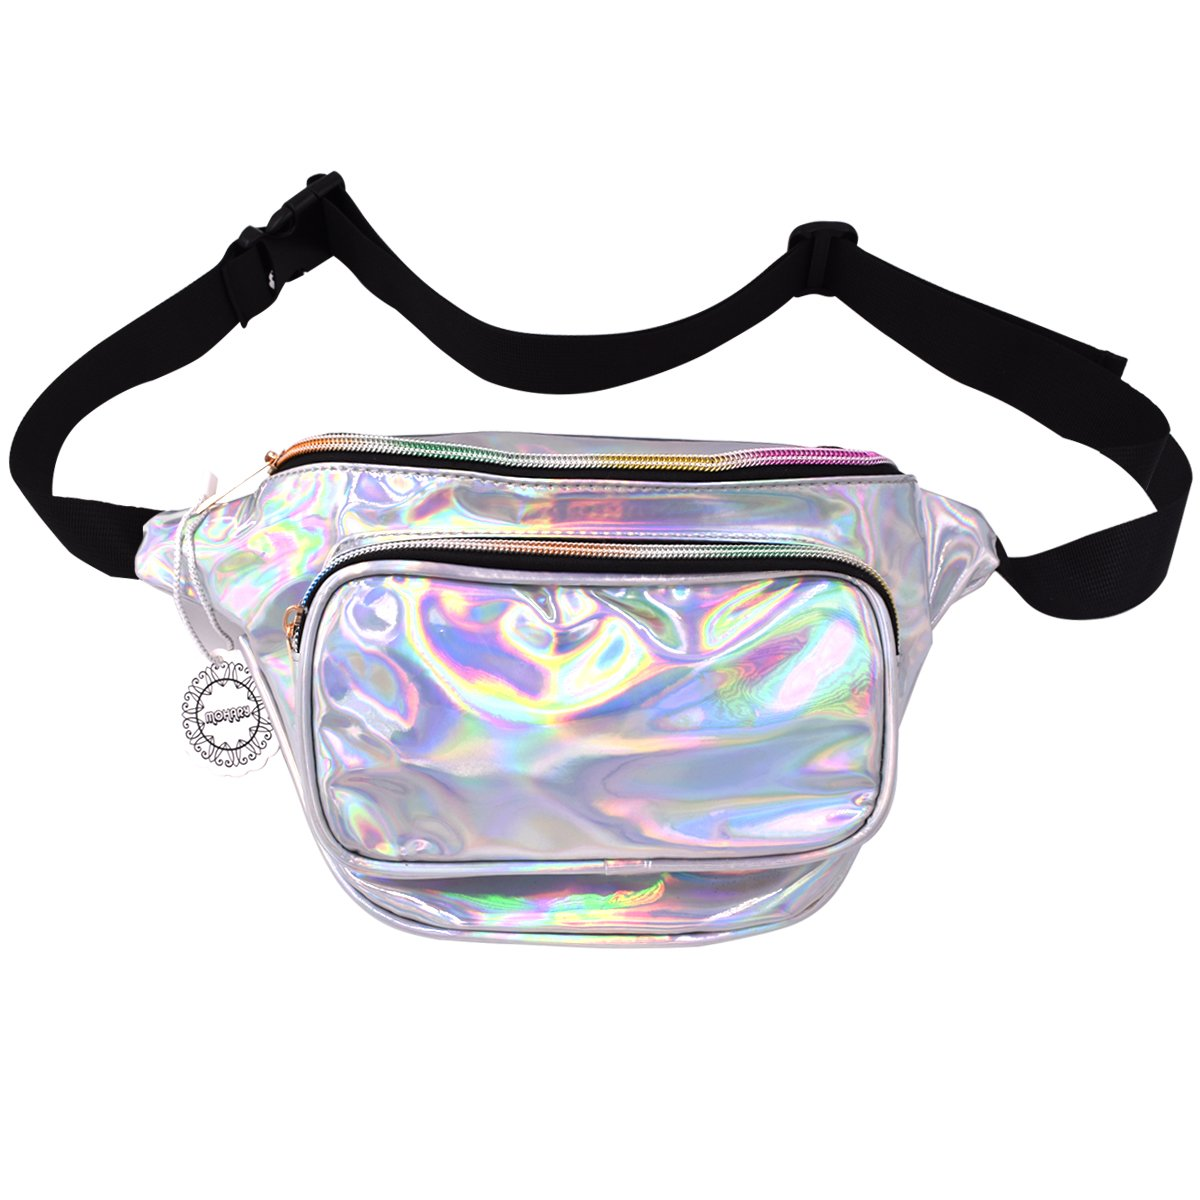 Water Resistant Shiny Neon Fanny Bag for Women Rave Festival Hologram Bum Travel Purse Waist Pack by MOHARY (Image #1)